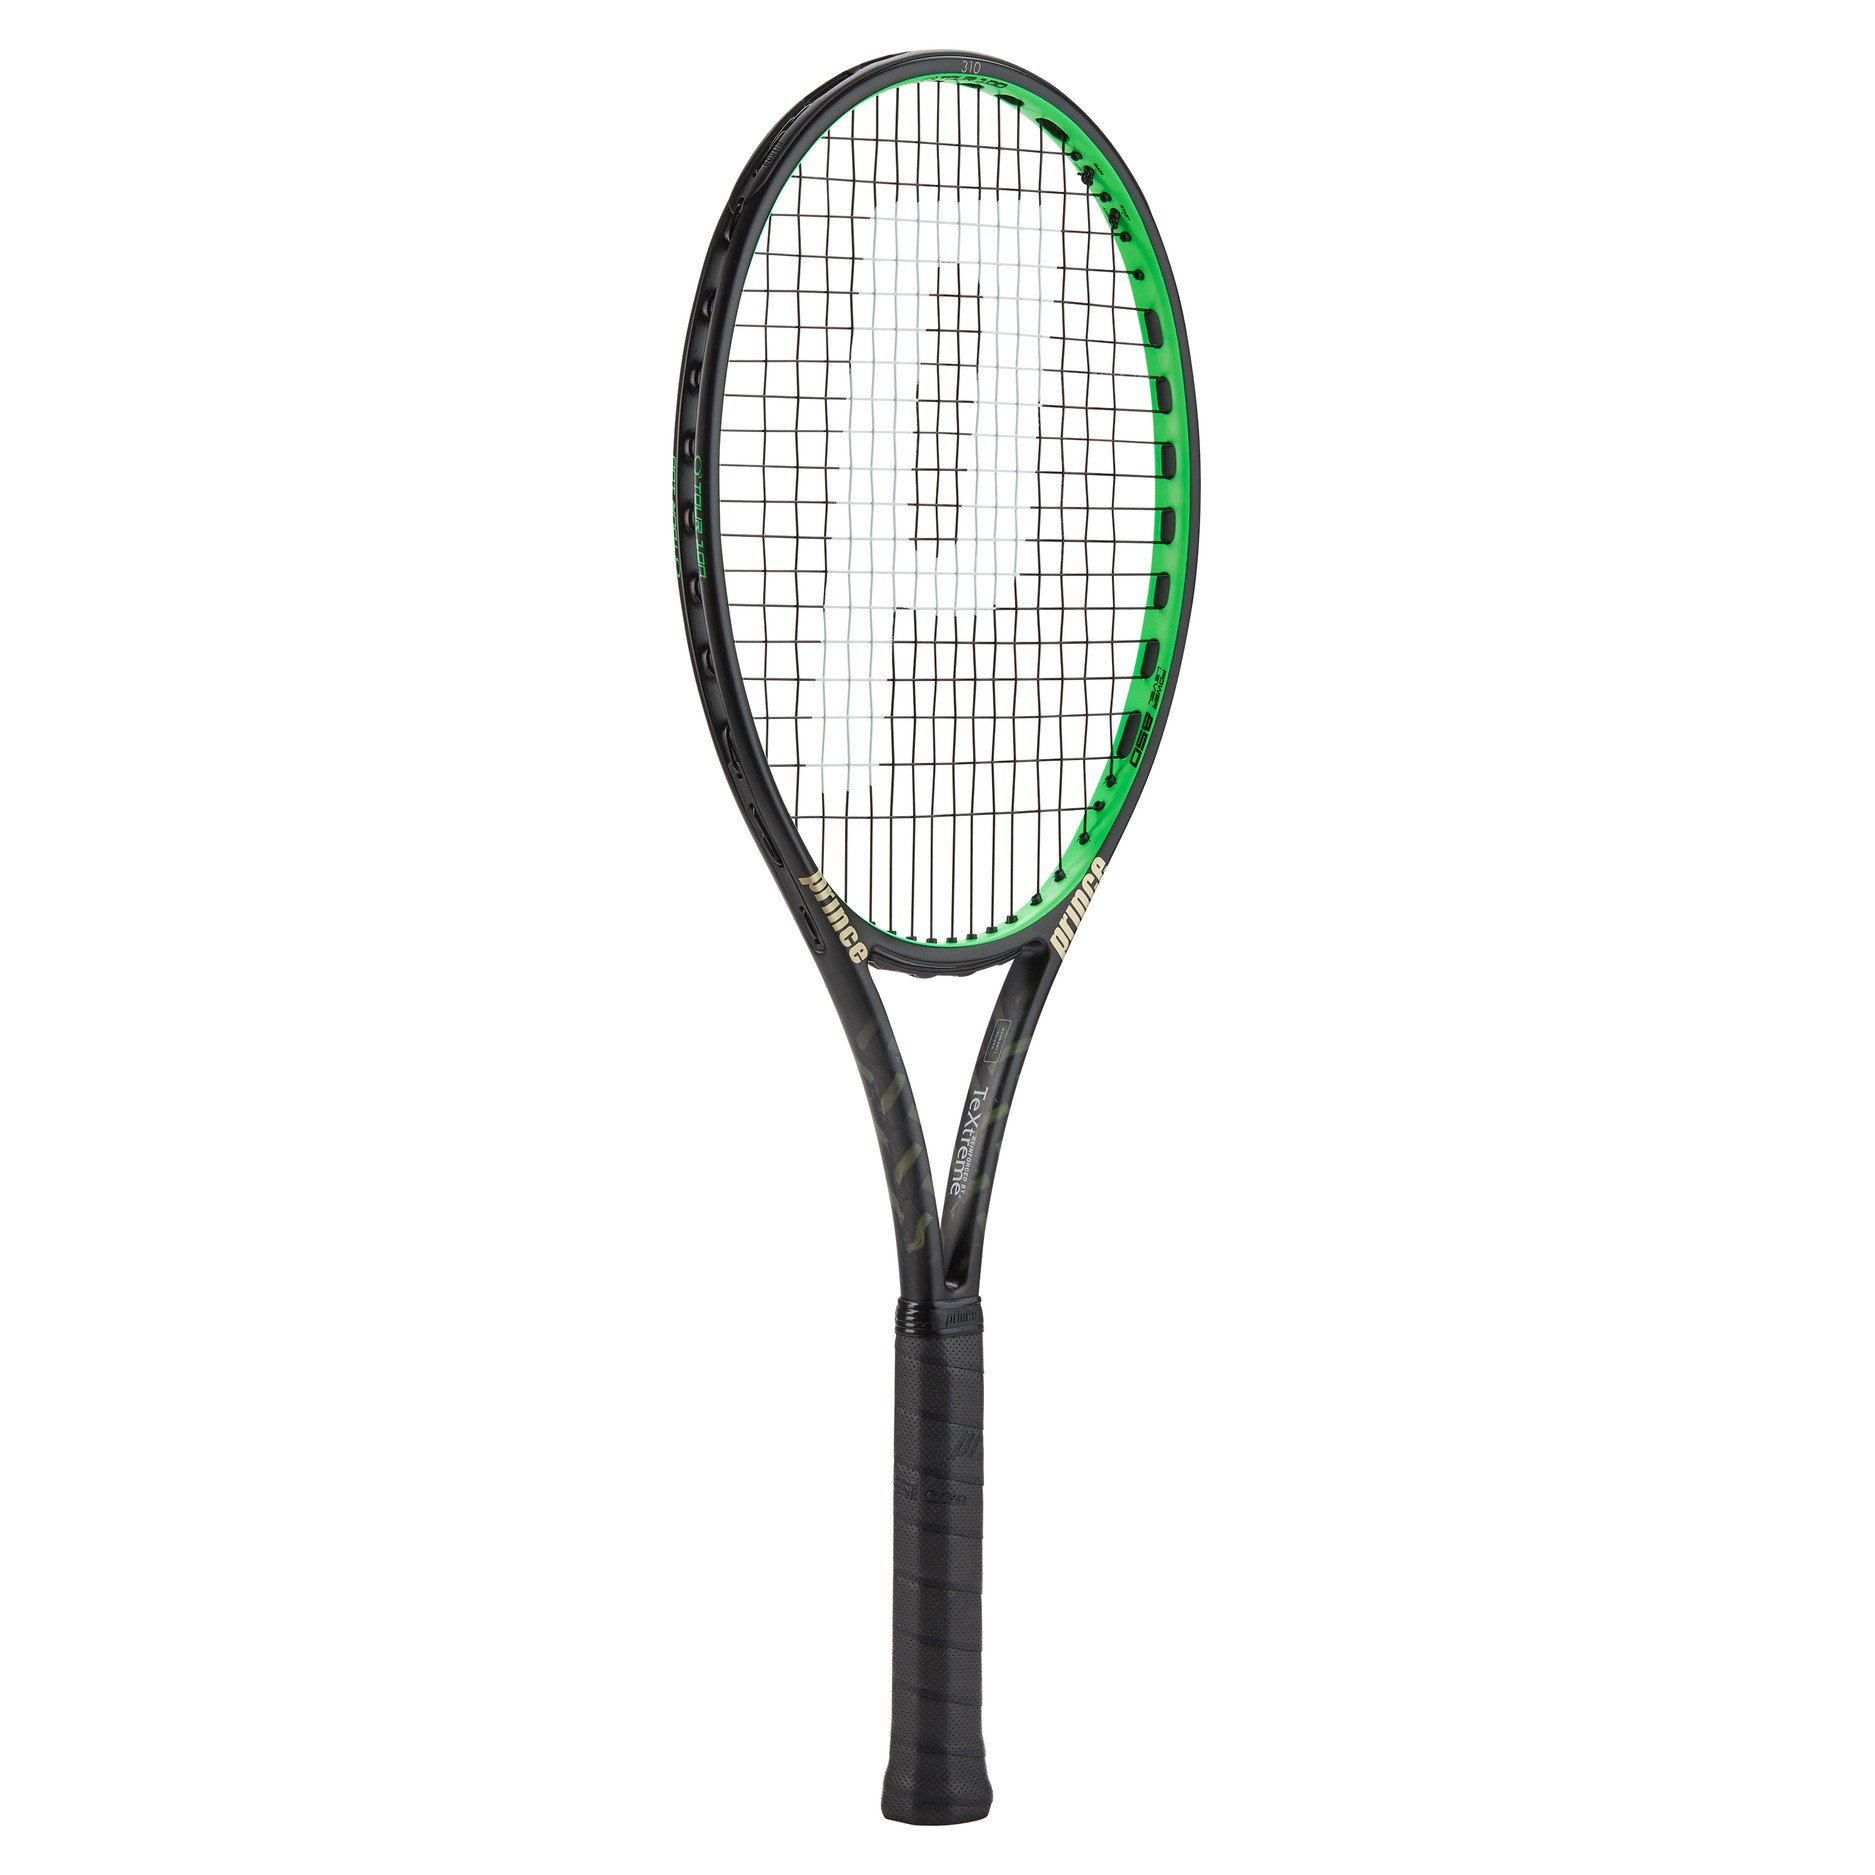 Prince Tennis Racket – O3 Tour 100 (310g)